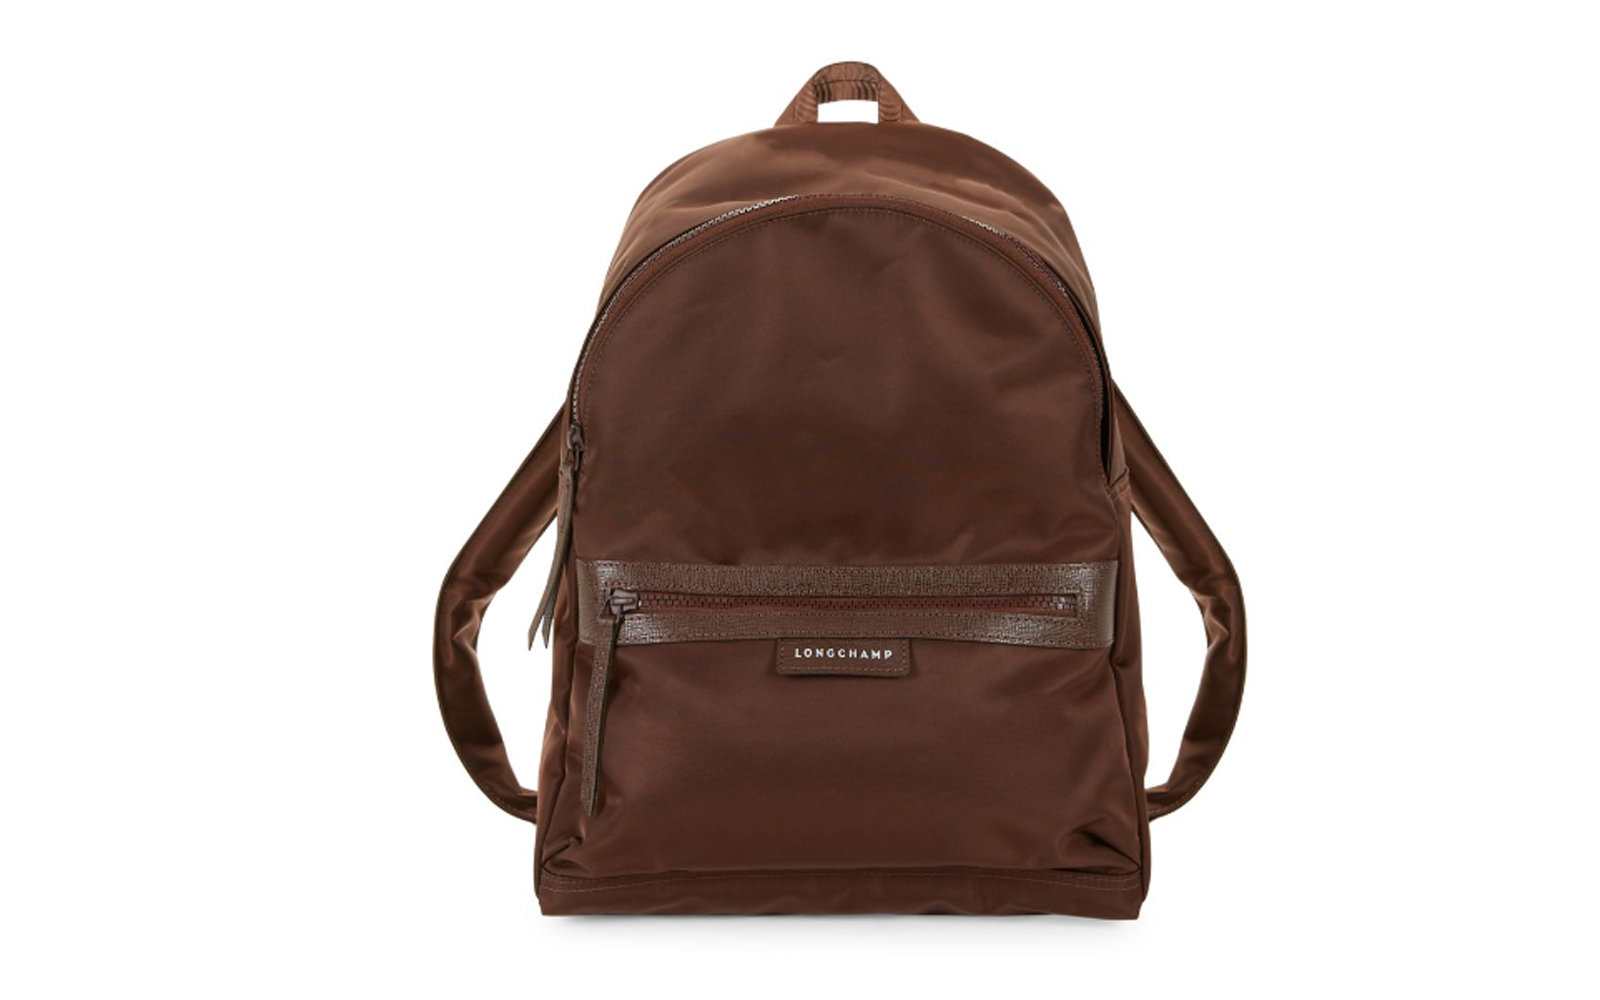 Longchamp Medium Le Pliage Neo Backpack in Chocolate